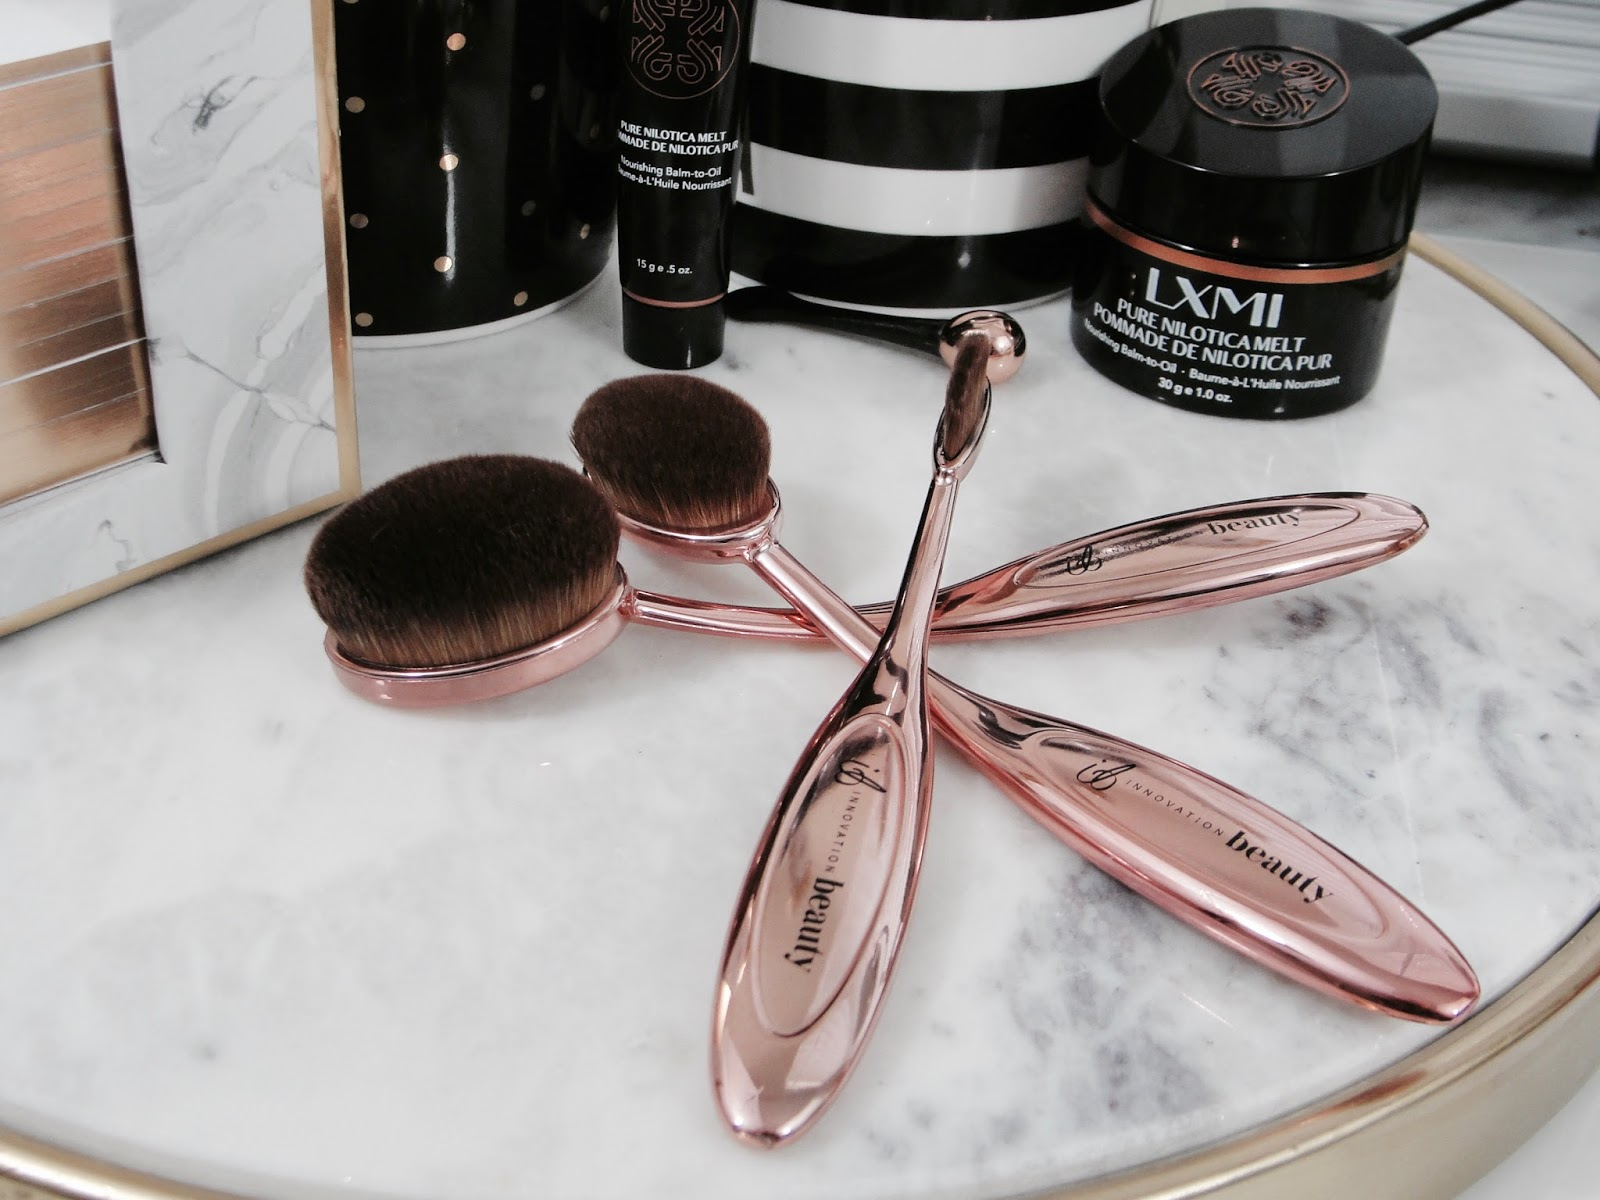 artis makeup brushes. have you seen the artis makeup brushes that- i can´t help it- remind me immediately on toothbrushes? but who can afford these brushes, that are priced